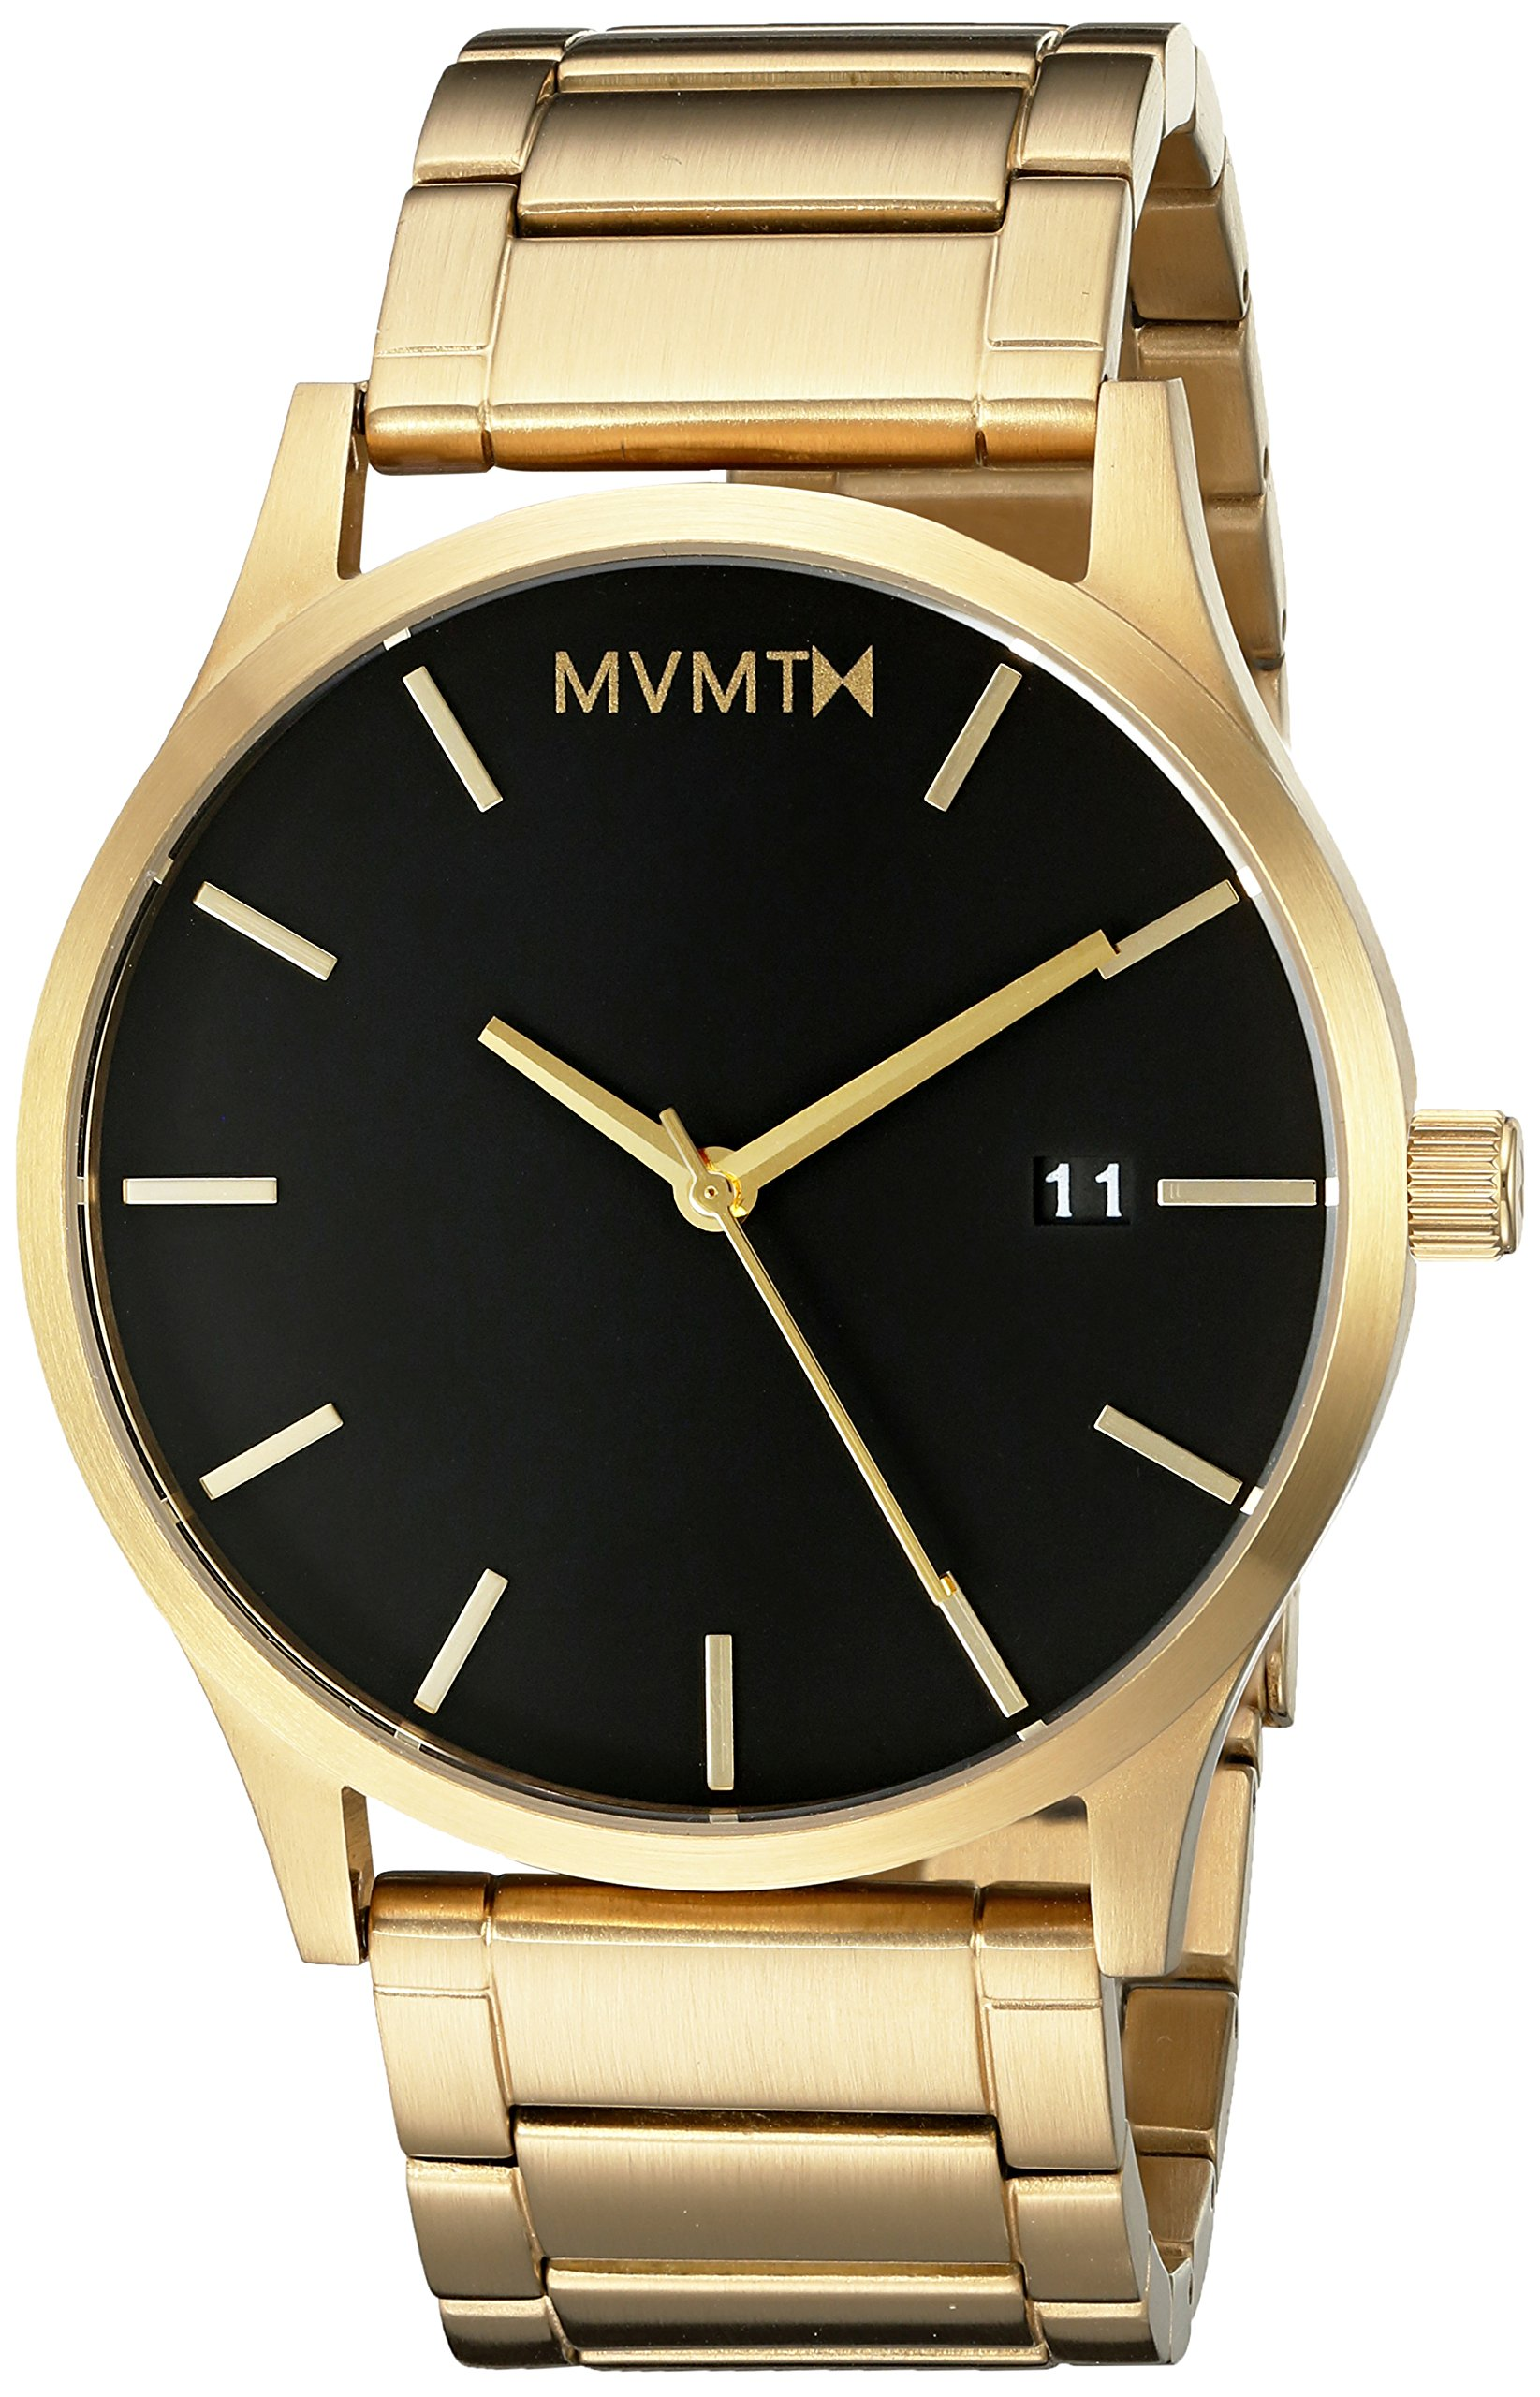 Mvmt watches gold case with gold stainless steel bracelet men 39 s watch chickadee solutions for Wacthes mvmt